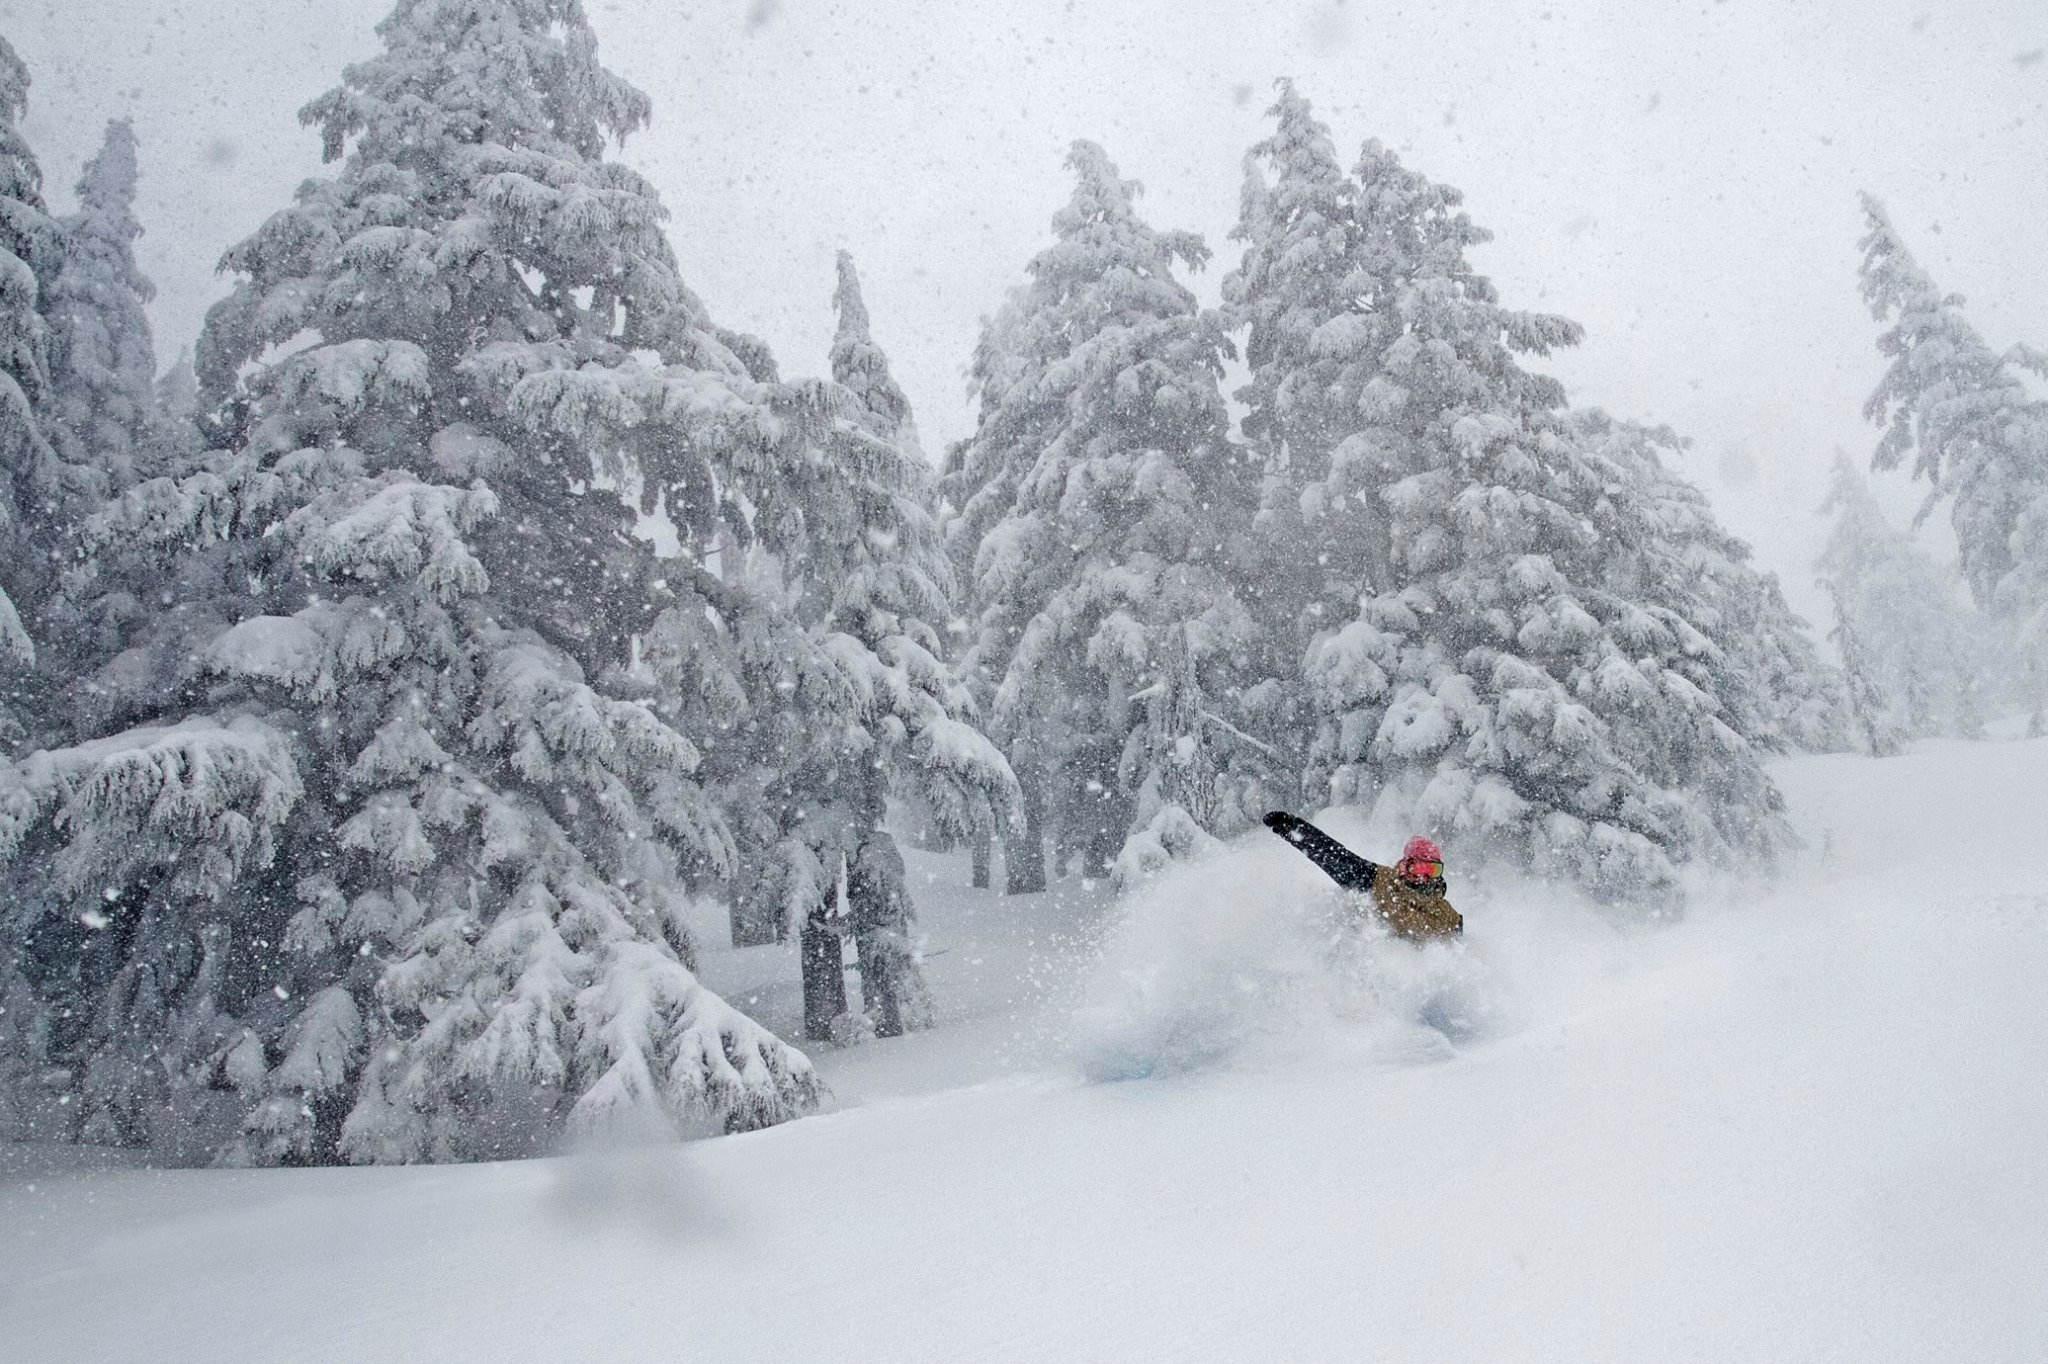 Mt. Bachelor, OR on March 15th. photo: tapper